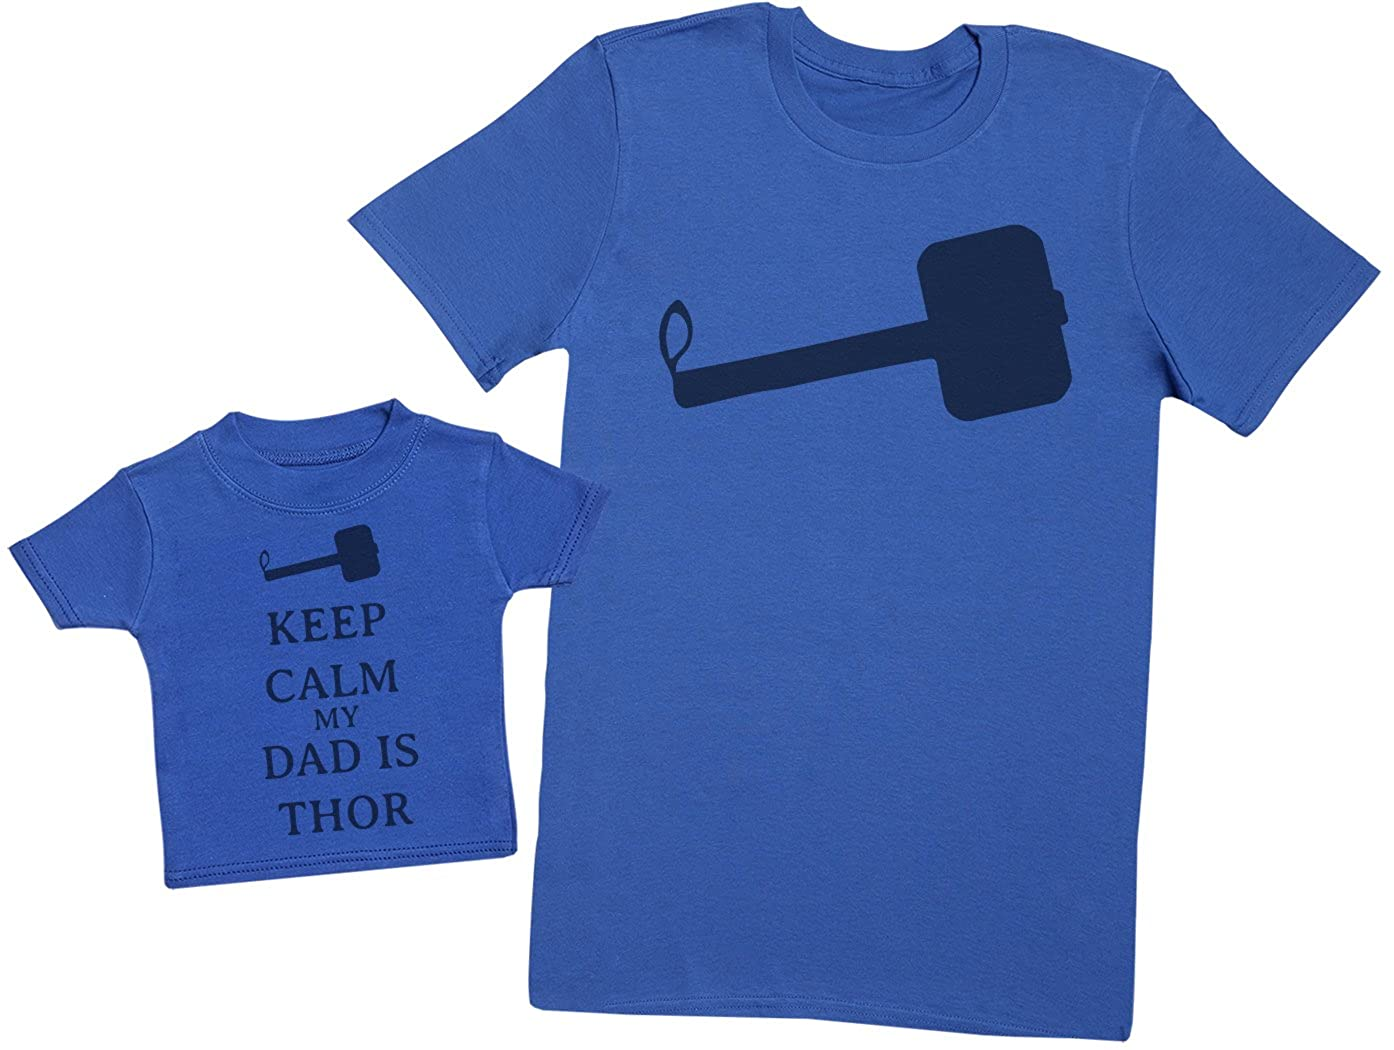 Matching Father Baby Gift Set Mens T Shirt /& Baby T-Shirt Medium /& 6-12 Months Keep Calm My Dad is Thor Blue